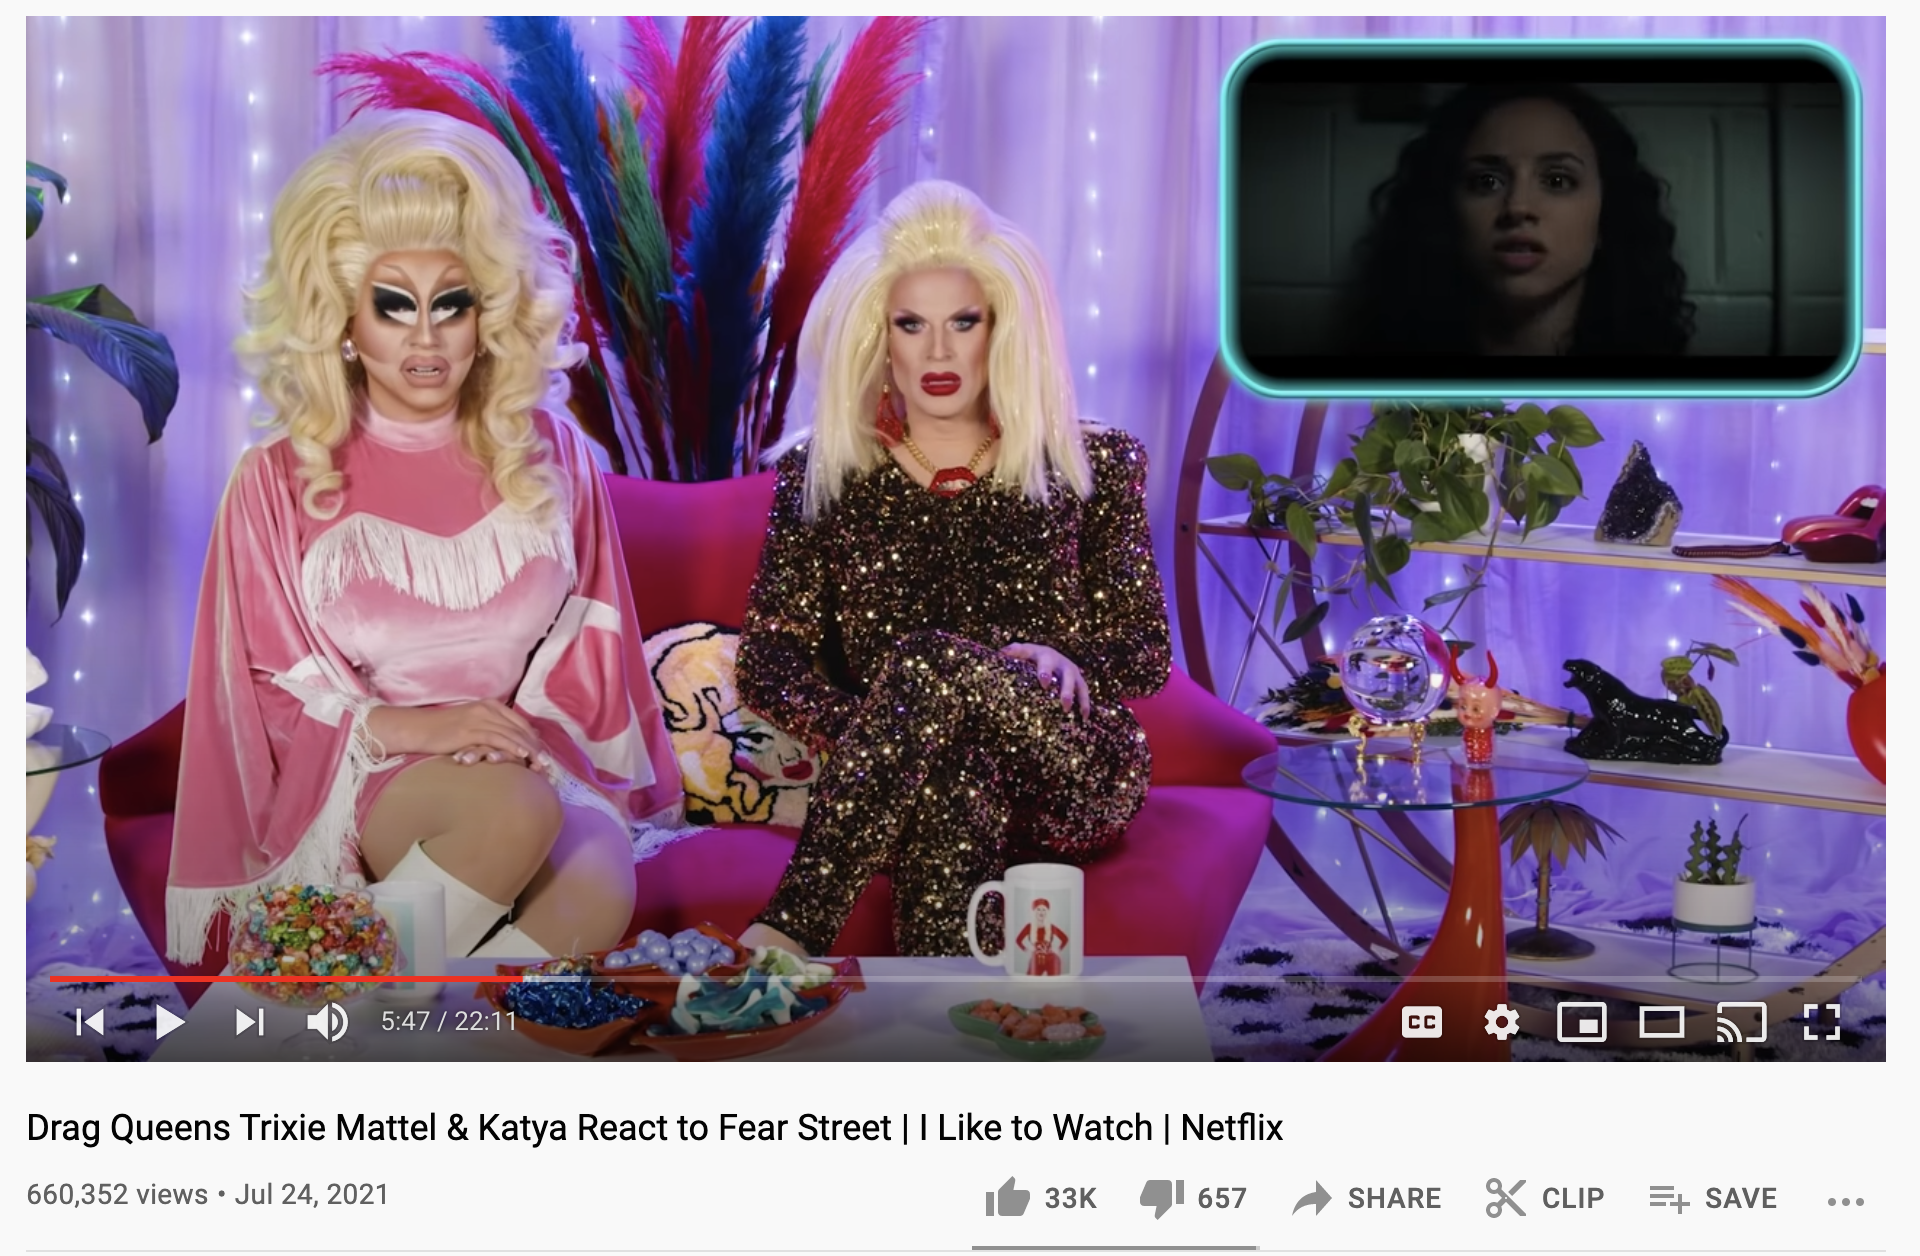 screenshot of trixie and katya react to fear street video on youtube